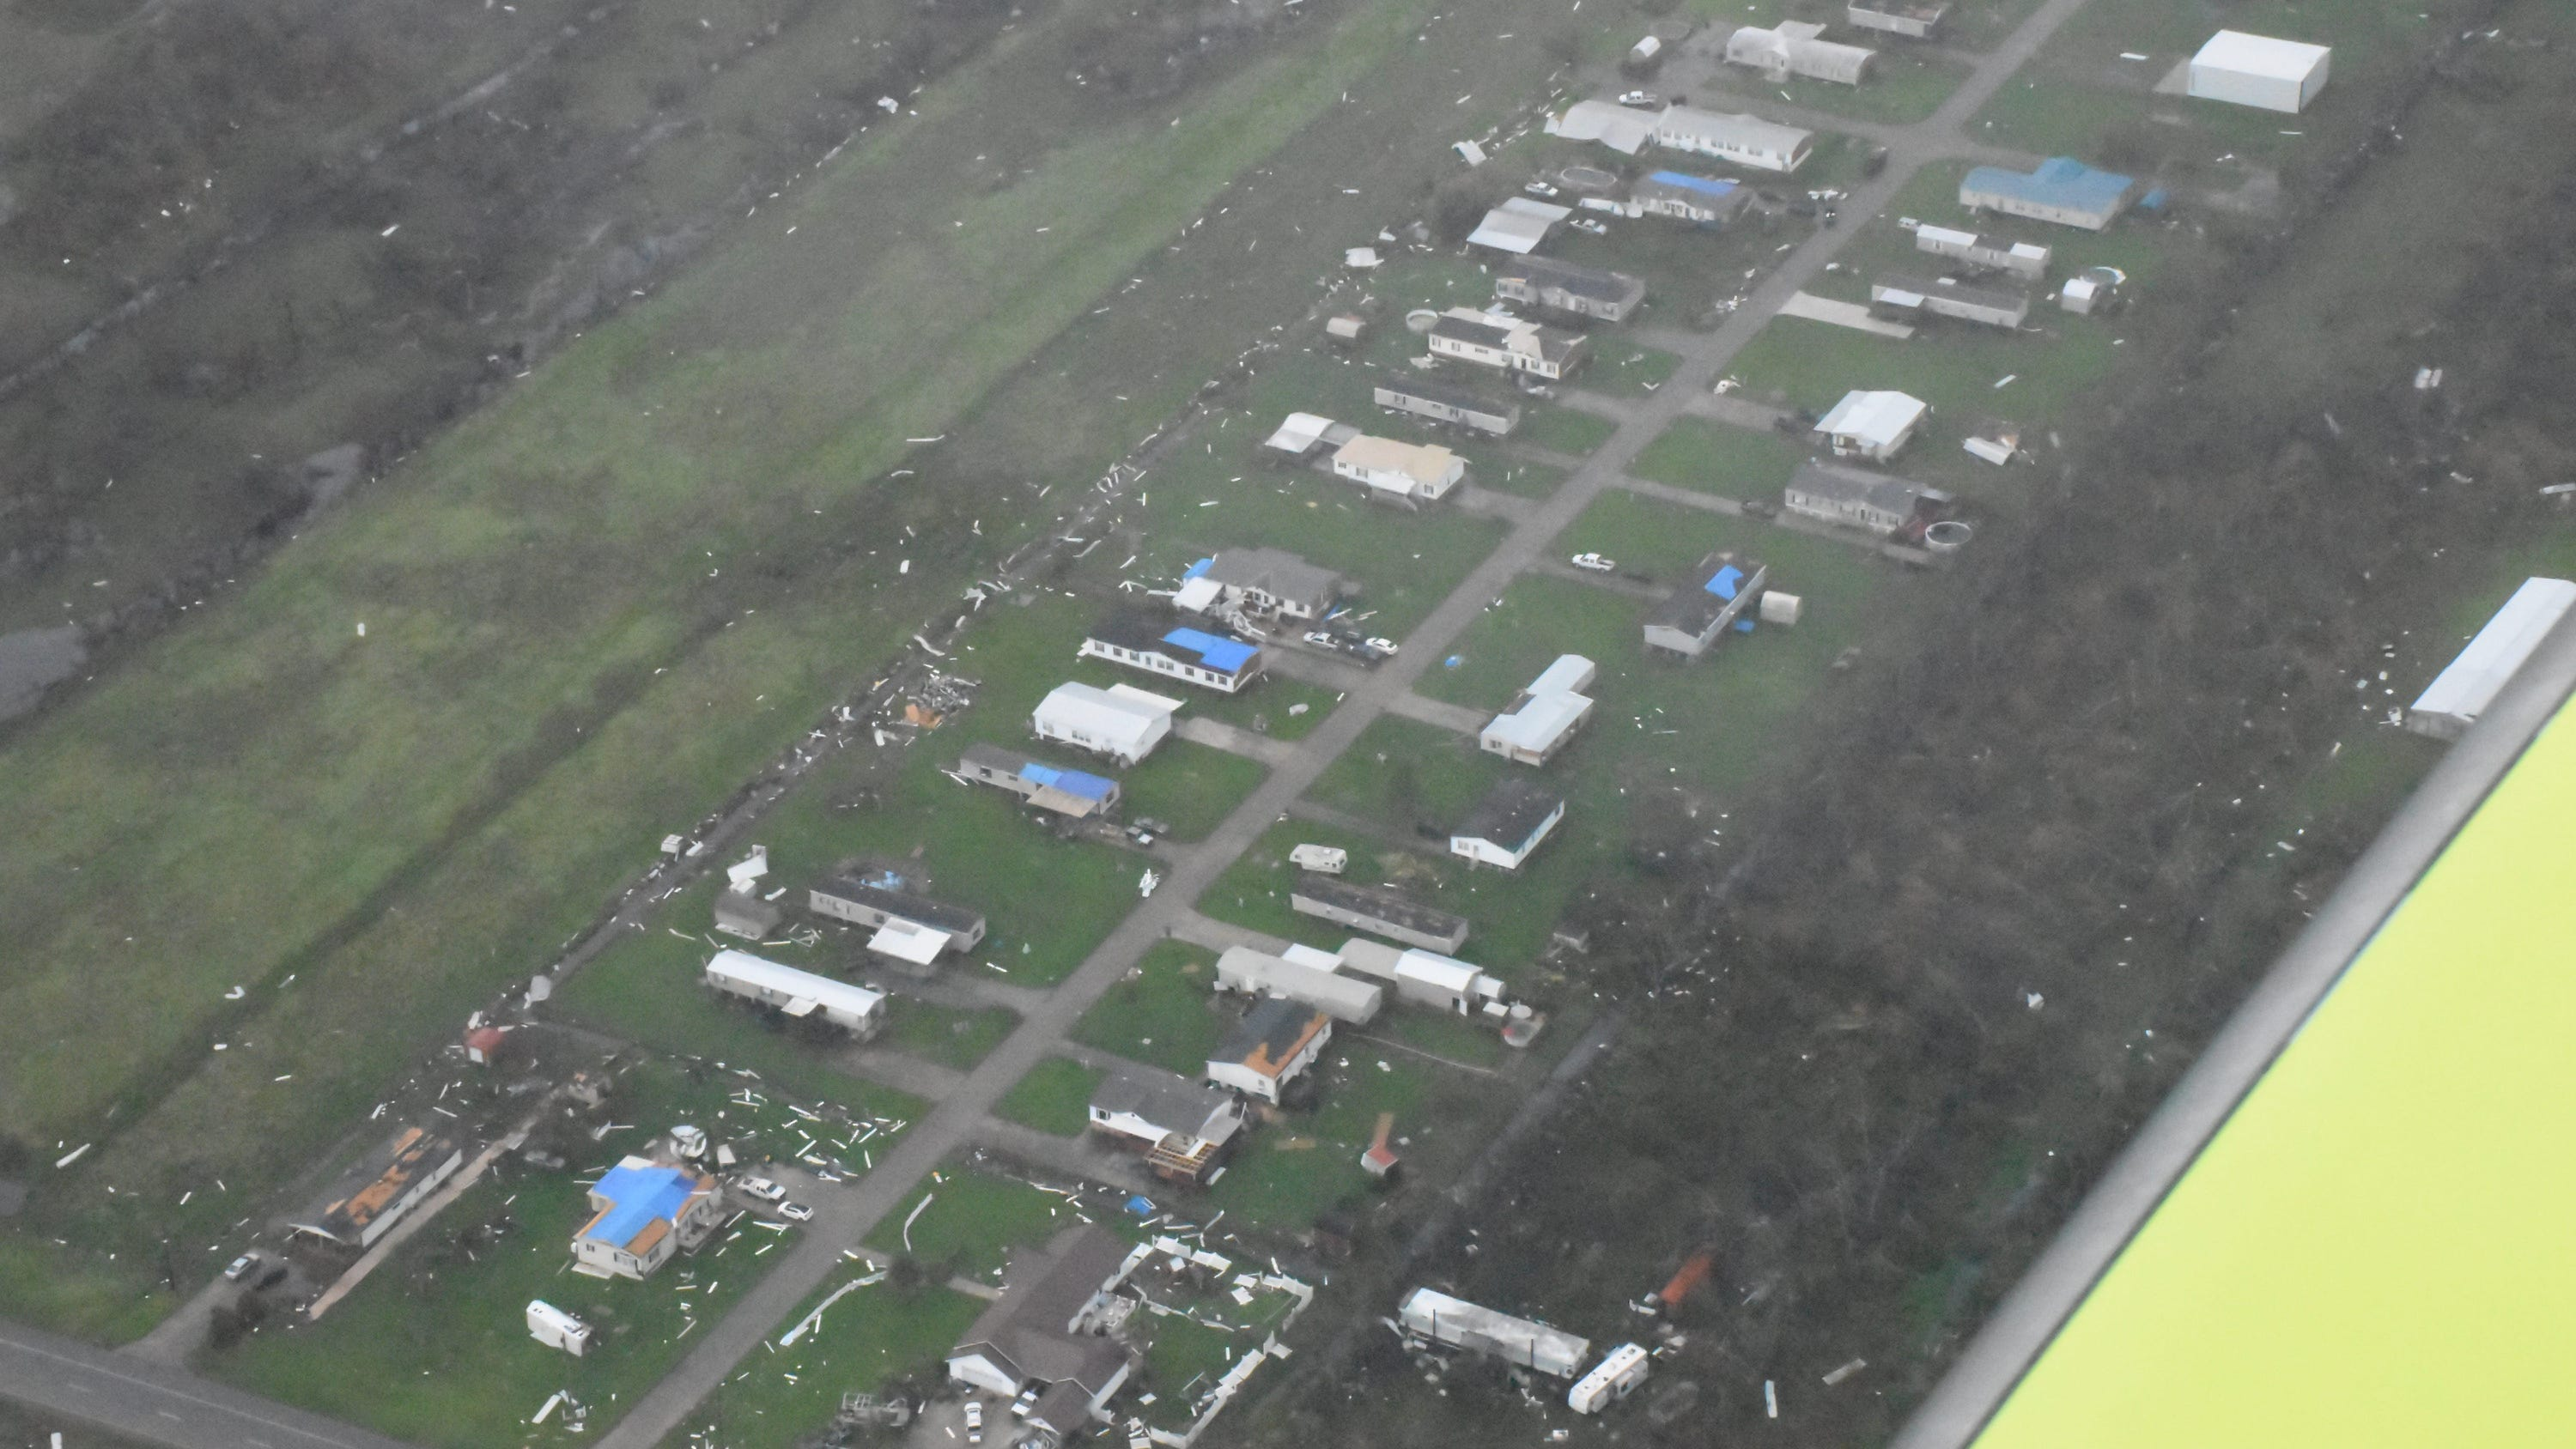 When will US citizens be labeled essential? Maybe we start with a tarp and $500 for people in NOLA